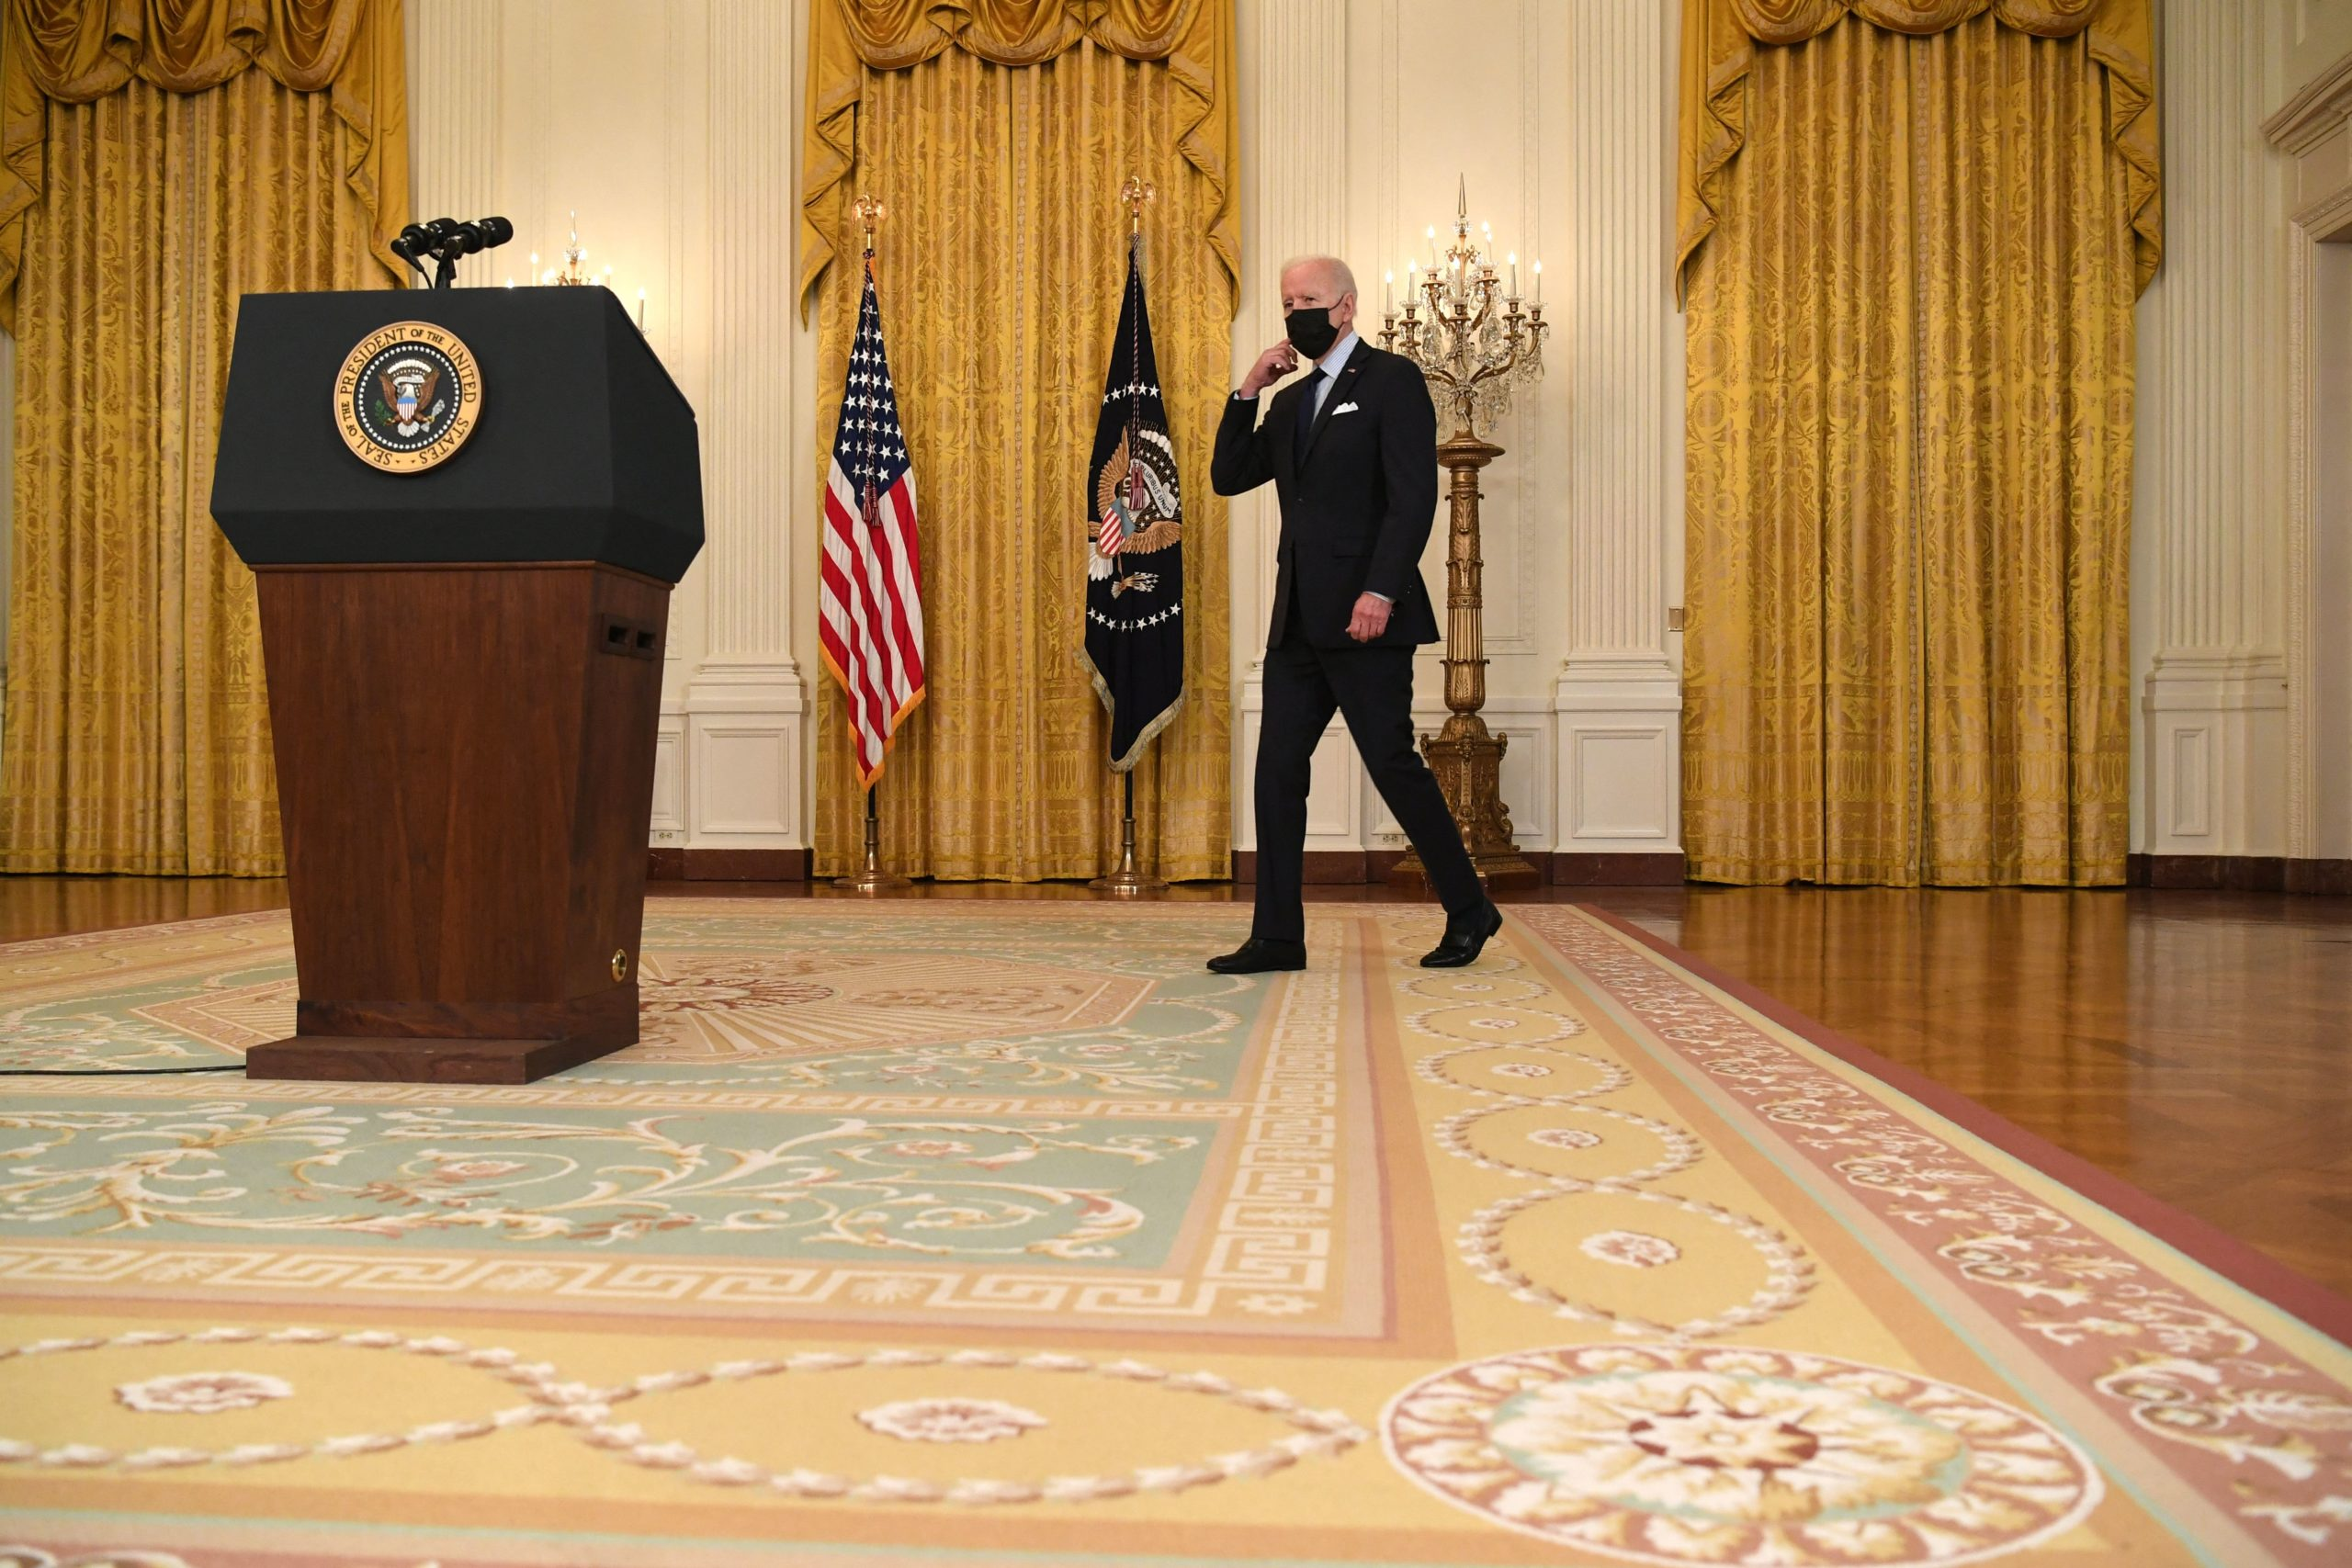 President Joe Biden arrives to speak about the April jobs report at the White House on Friday. (Saul Loeb/AFP via Getty Images)